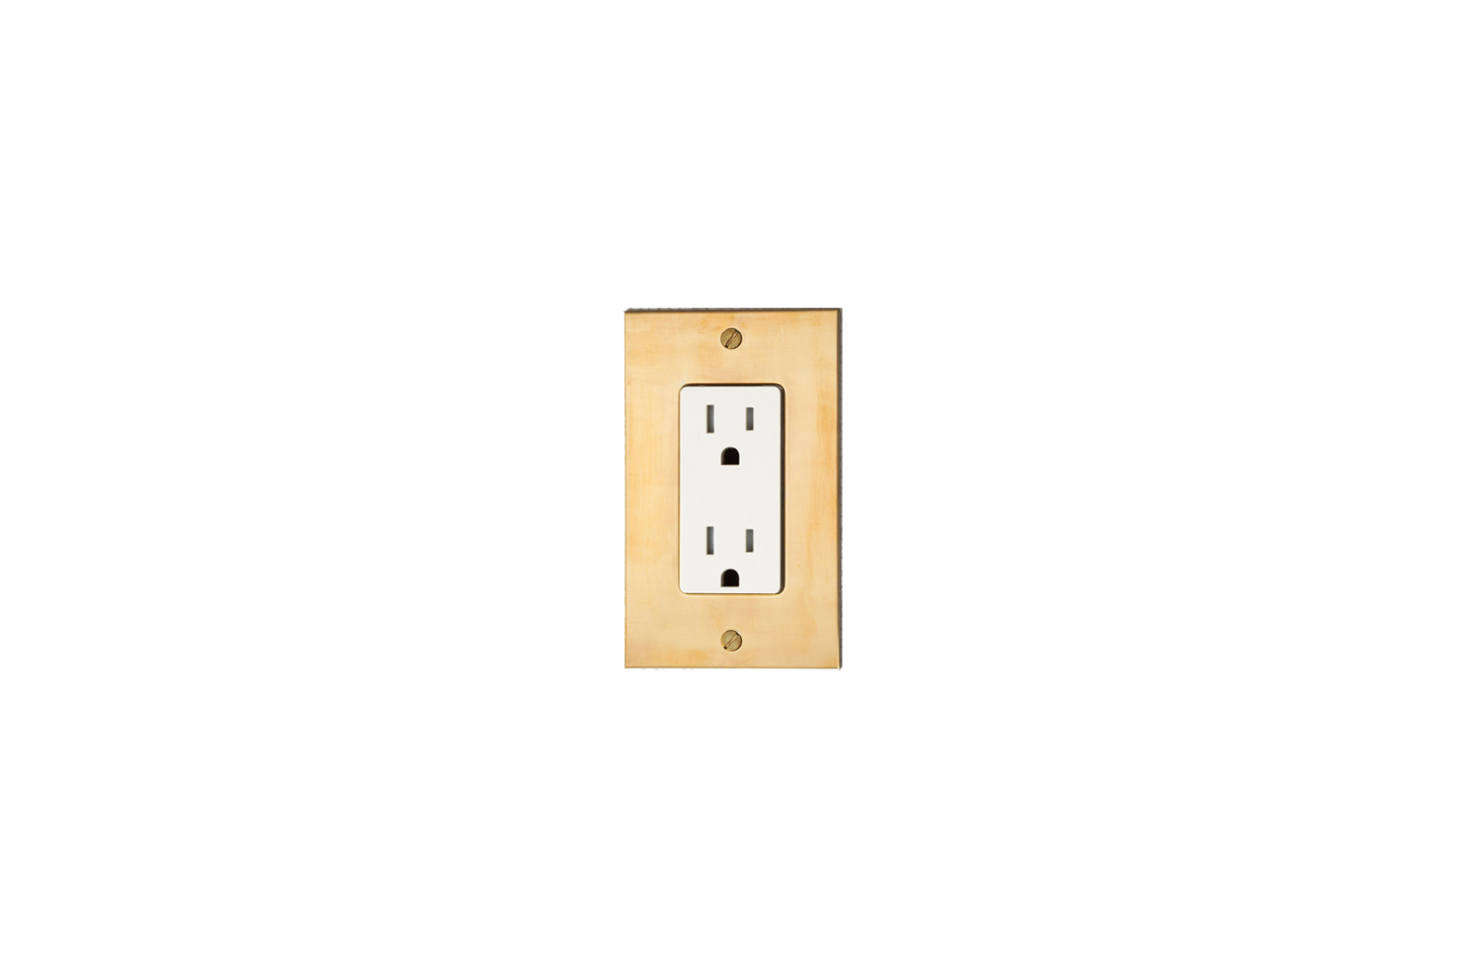 Unlacquered Brass Electrical Outlets can be found at Forbes & Lomax.